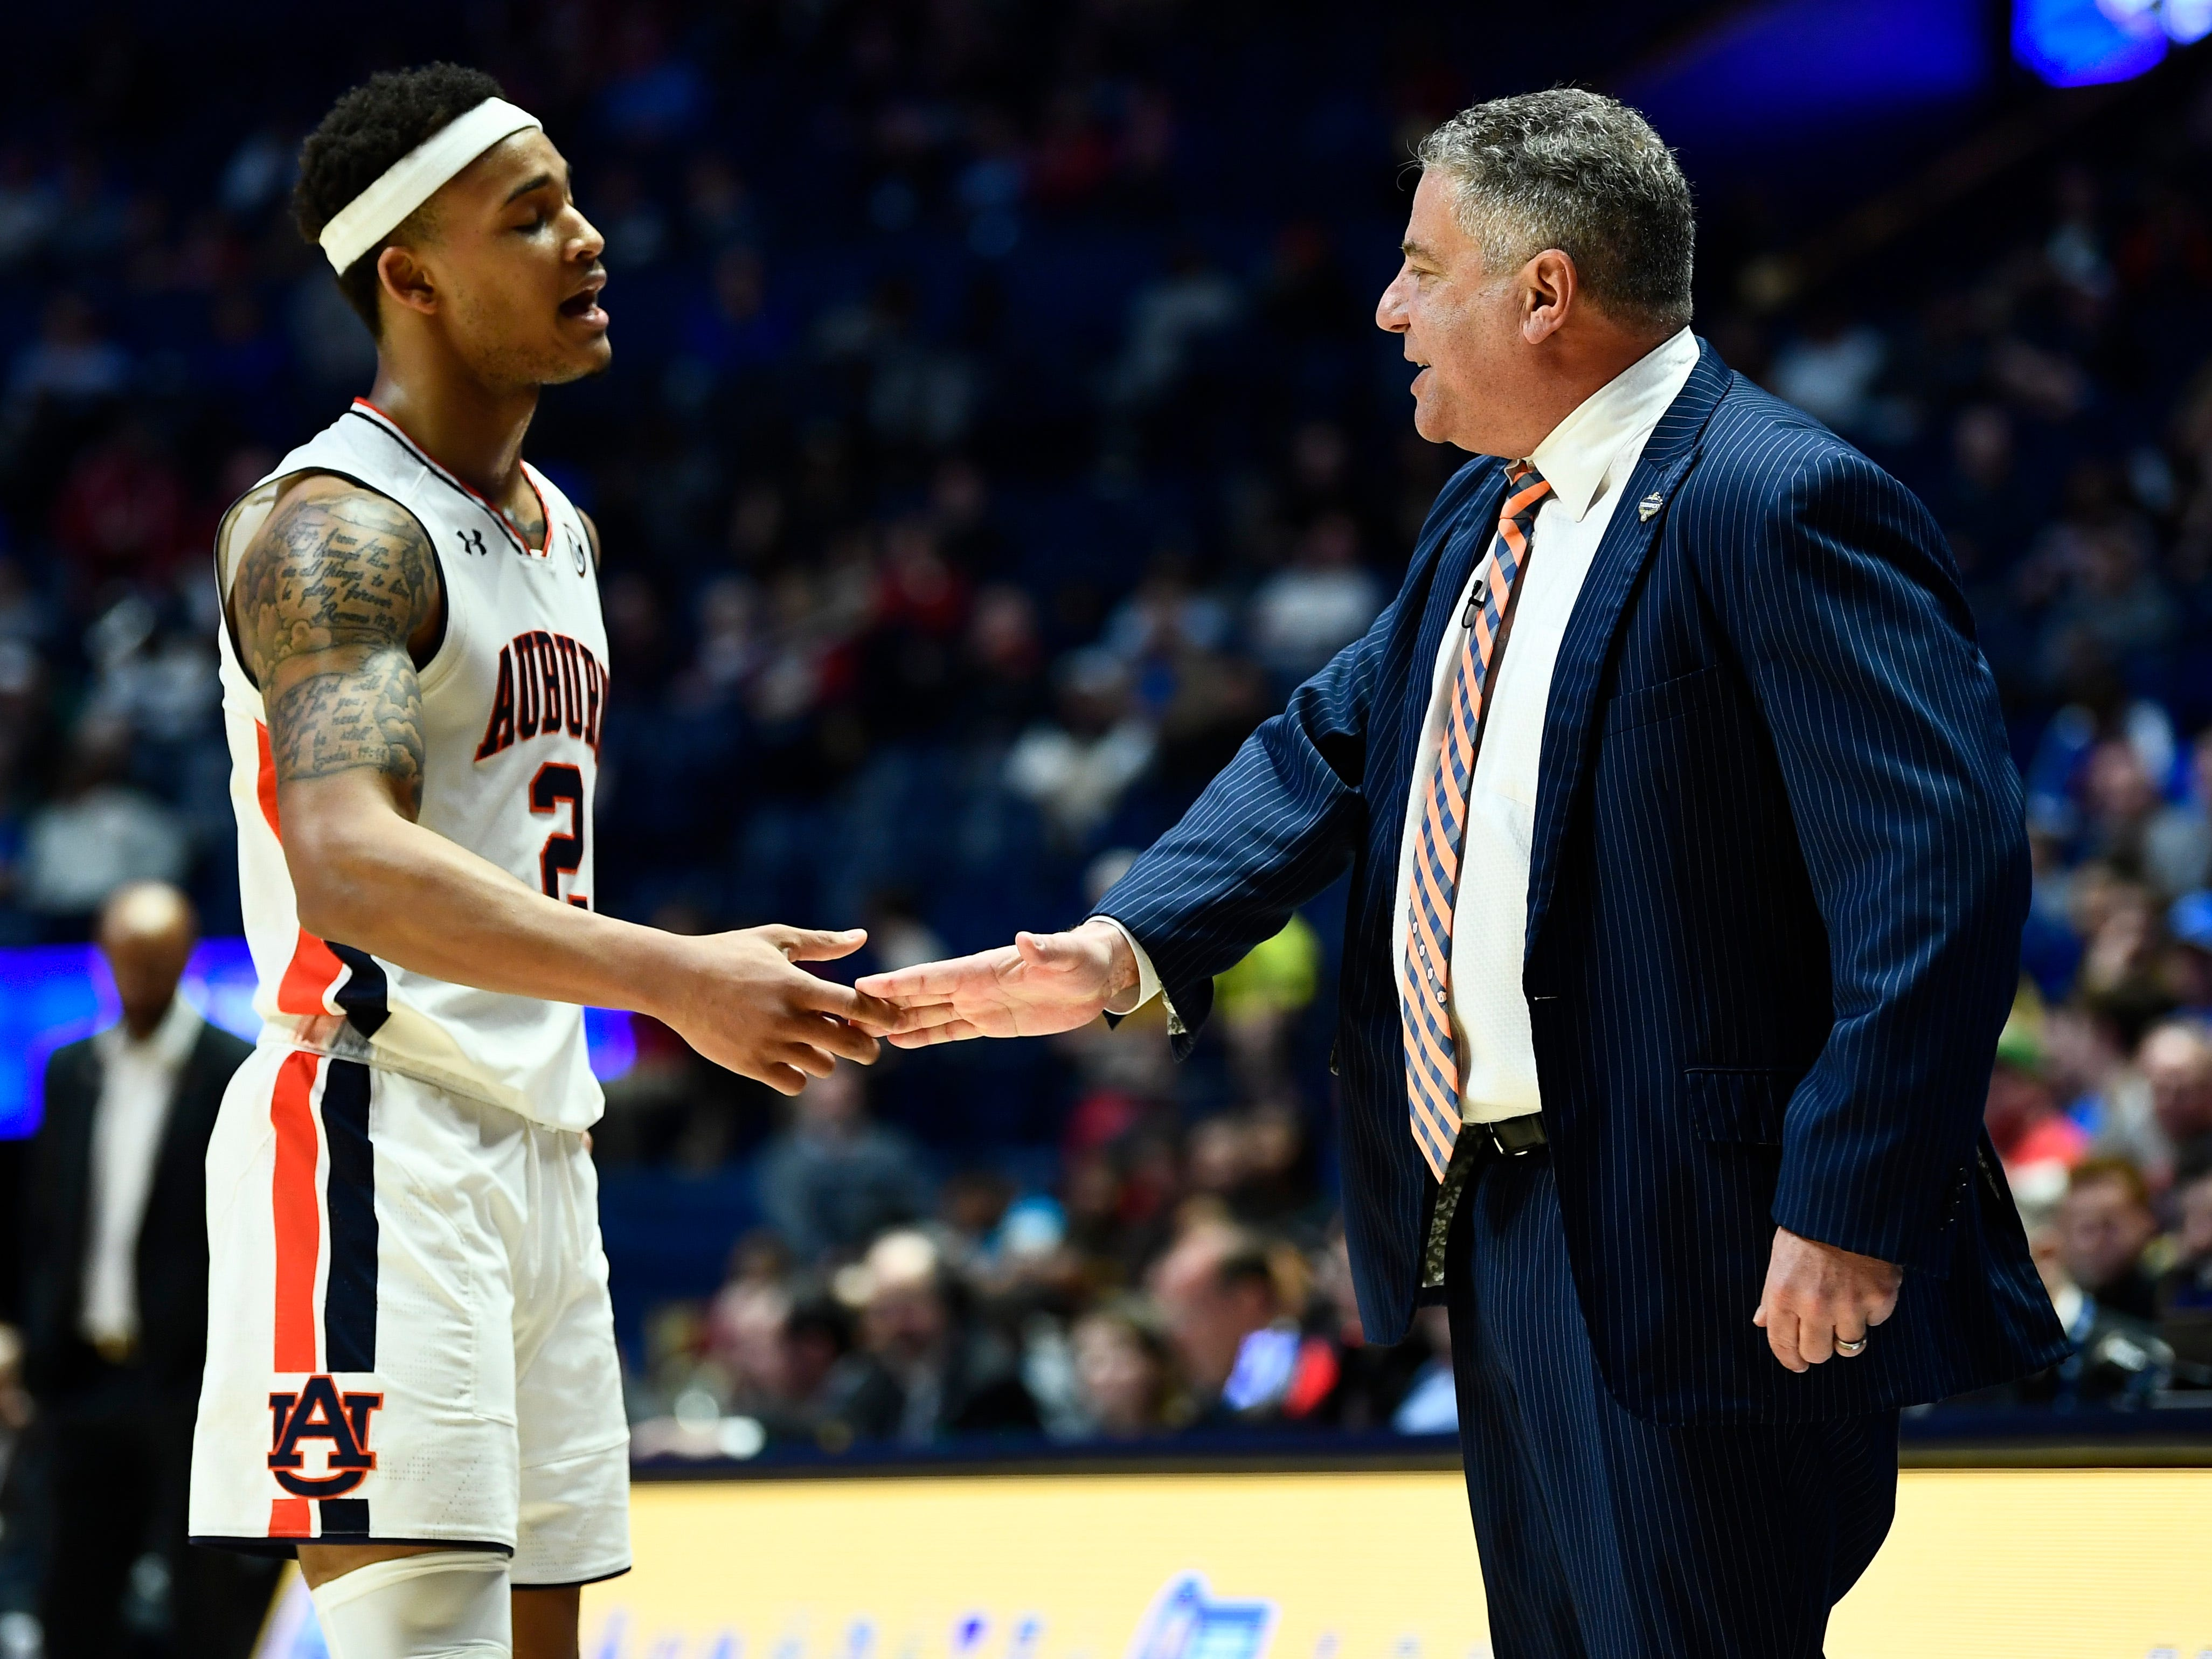 Auburn head coach Bruce Pearl shakes hands with Auburn guard Bryce Brown (2) during the second half of the SEC Men's Basketball Tournament game at Bridgestone Arena in Nashville, Tenn., Thursday, March 14, 2019.